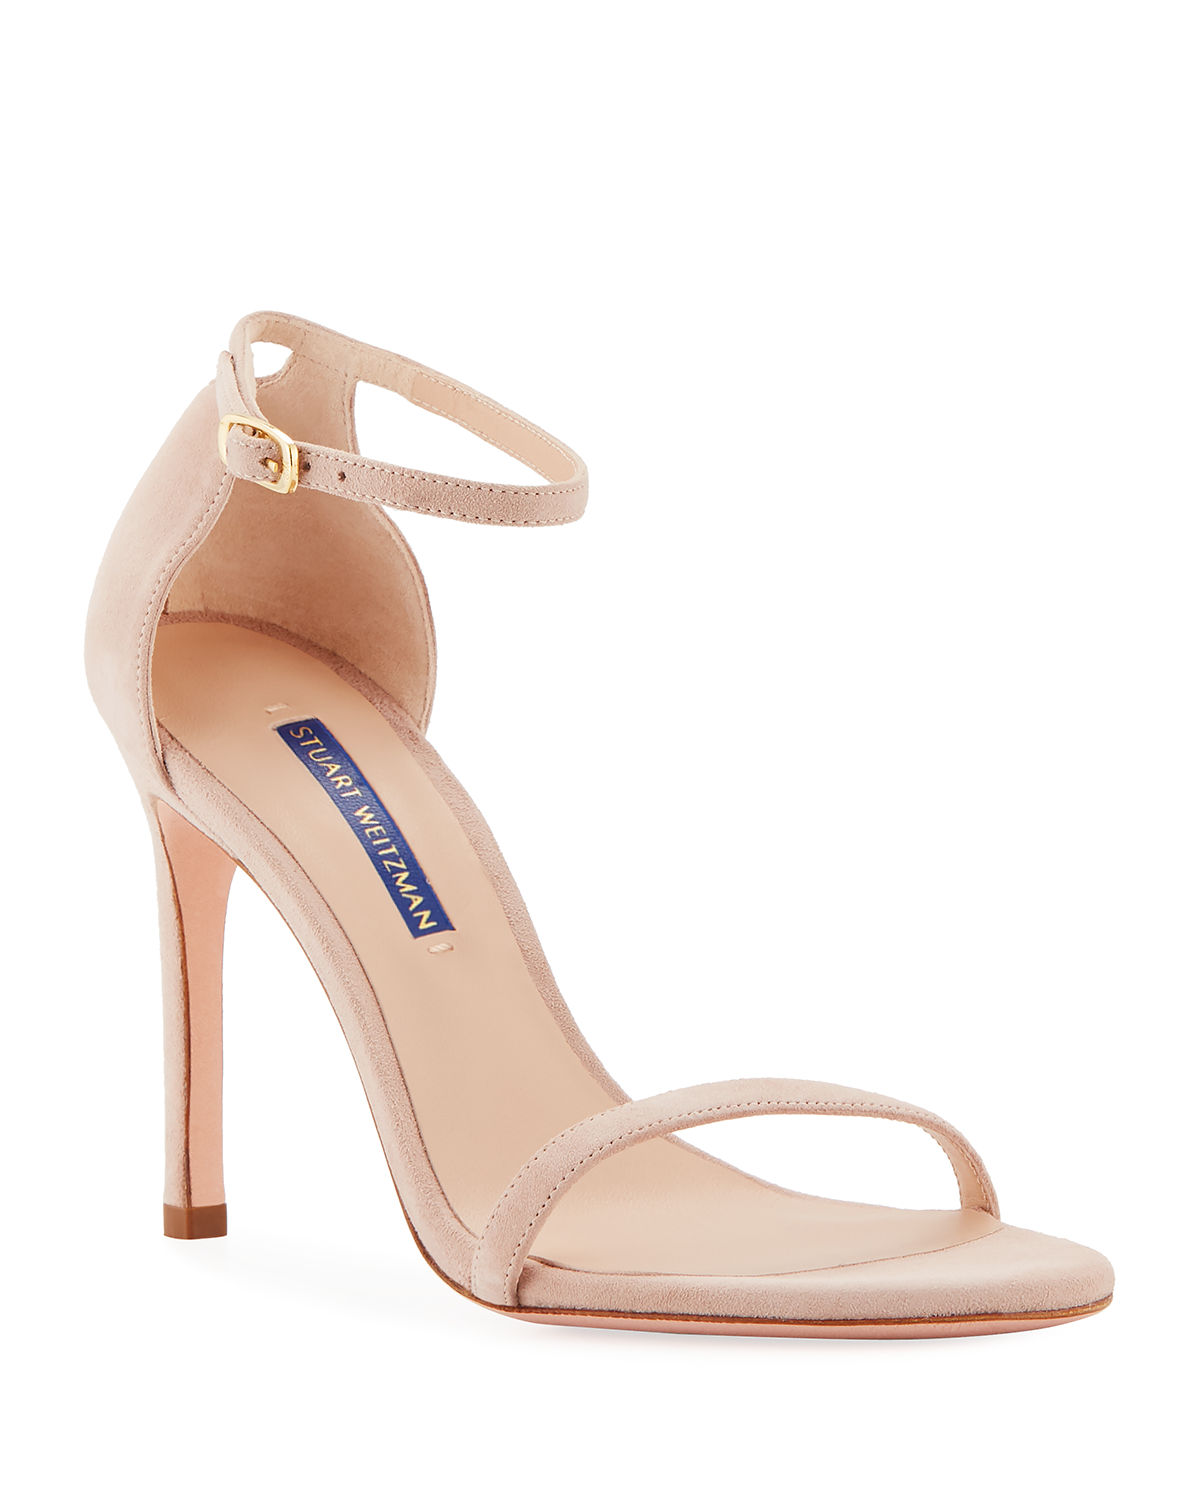 d0a9882ffb33 Stuart Weitzman Nudistsong Suede Ankle-Wrap Sandals